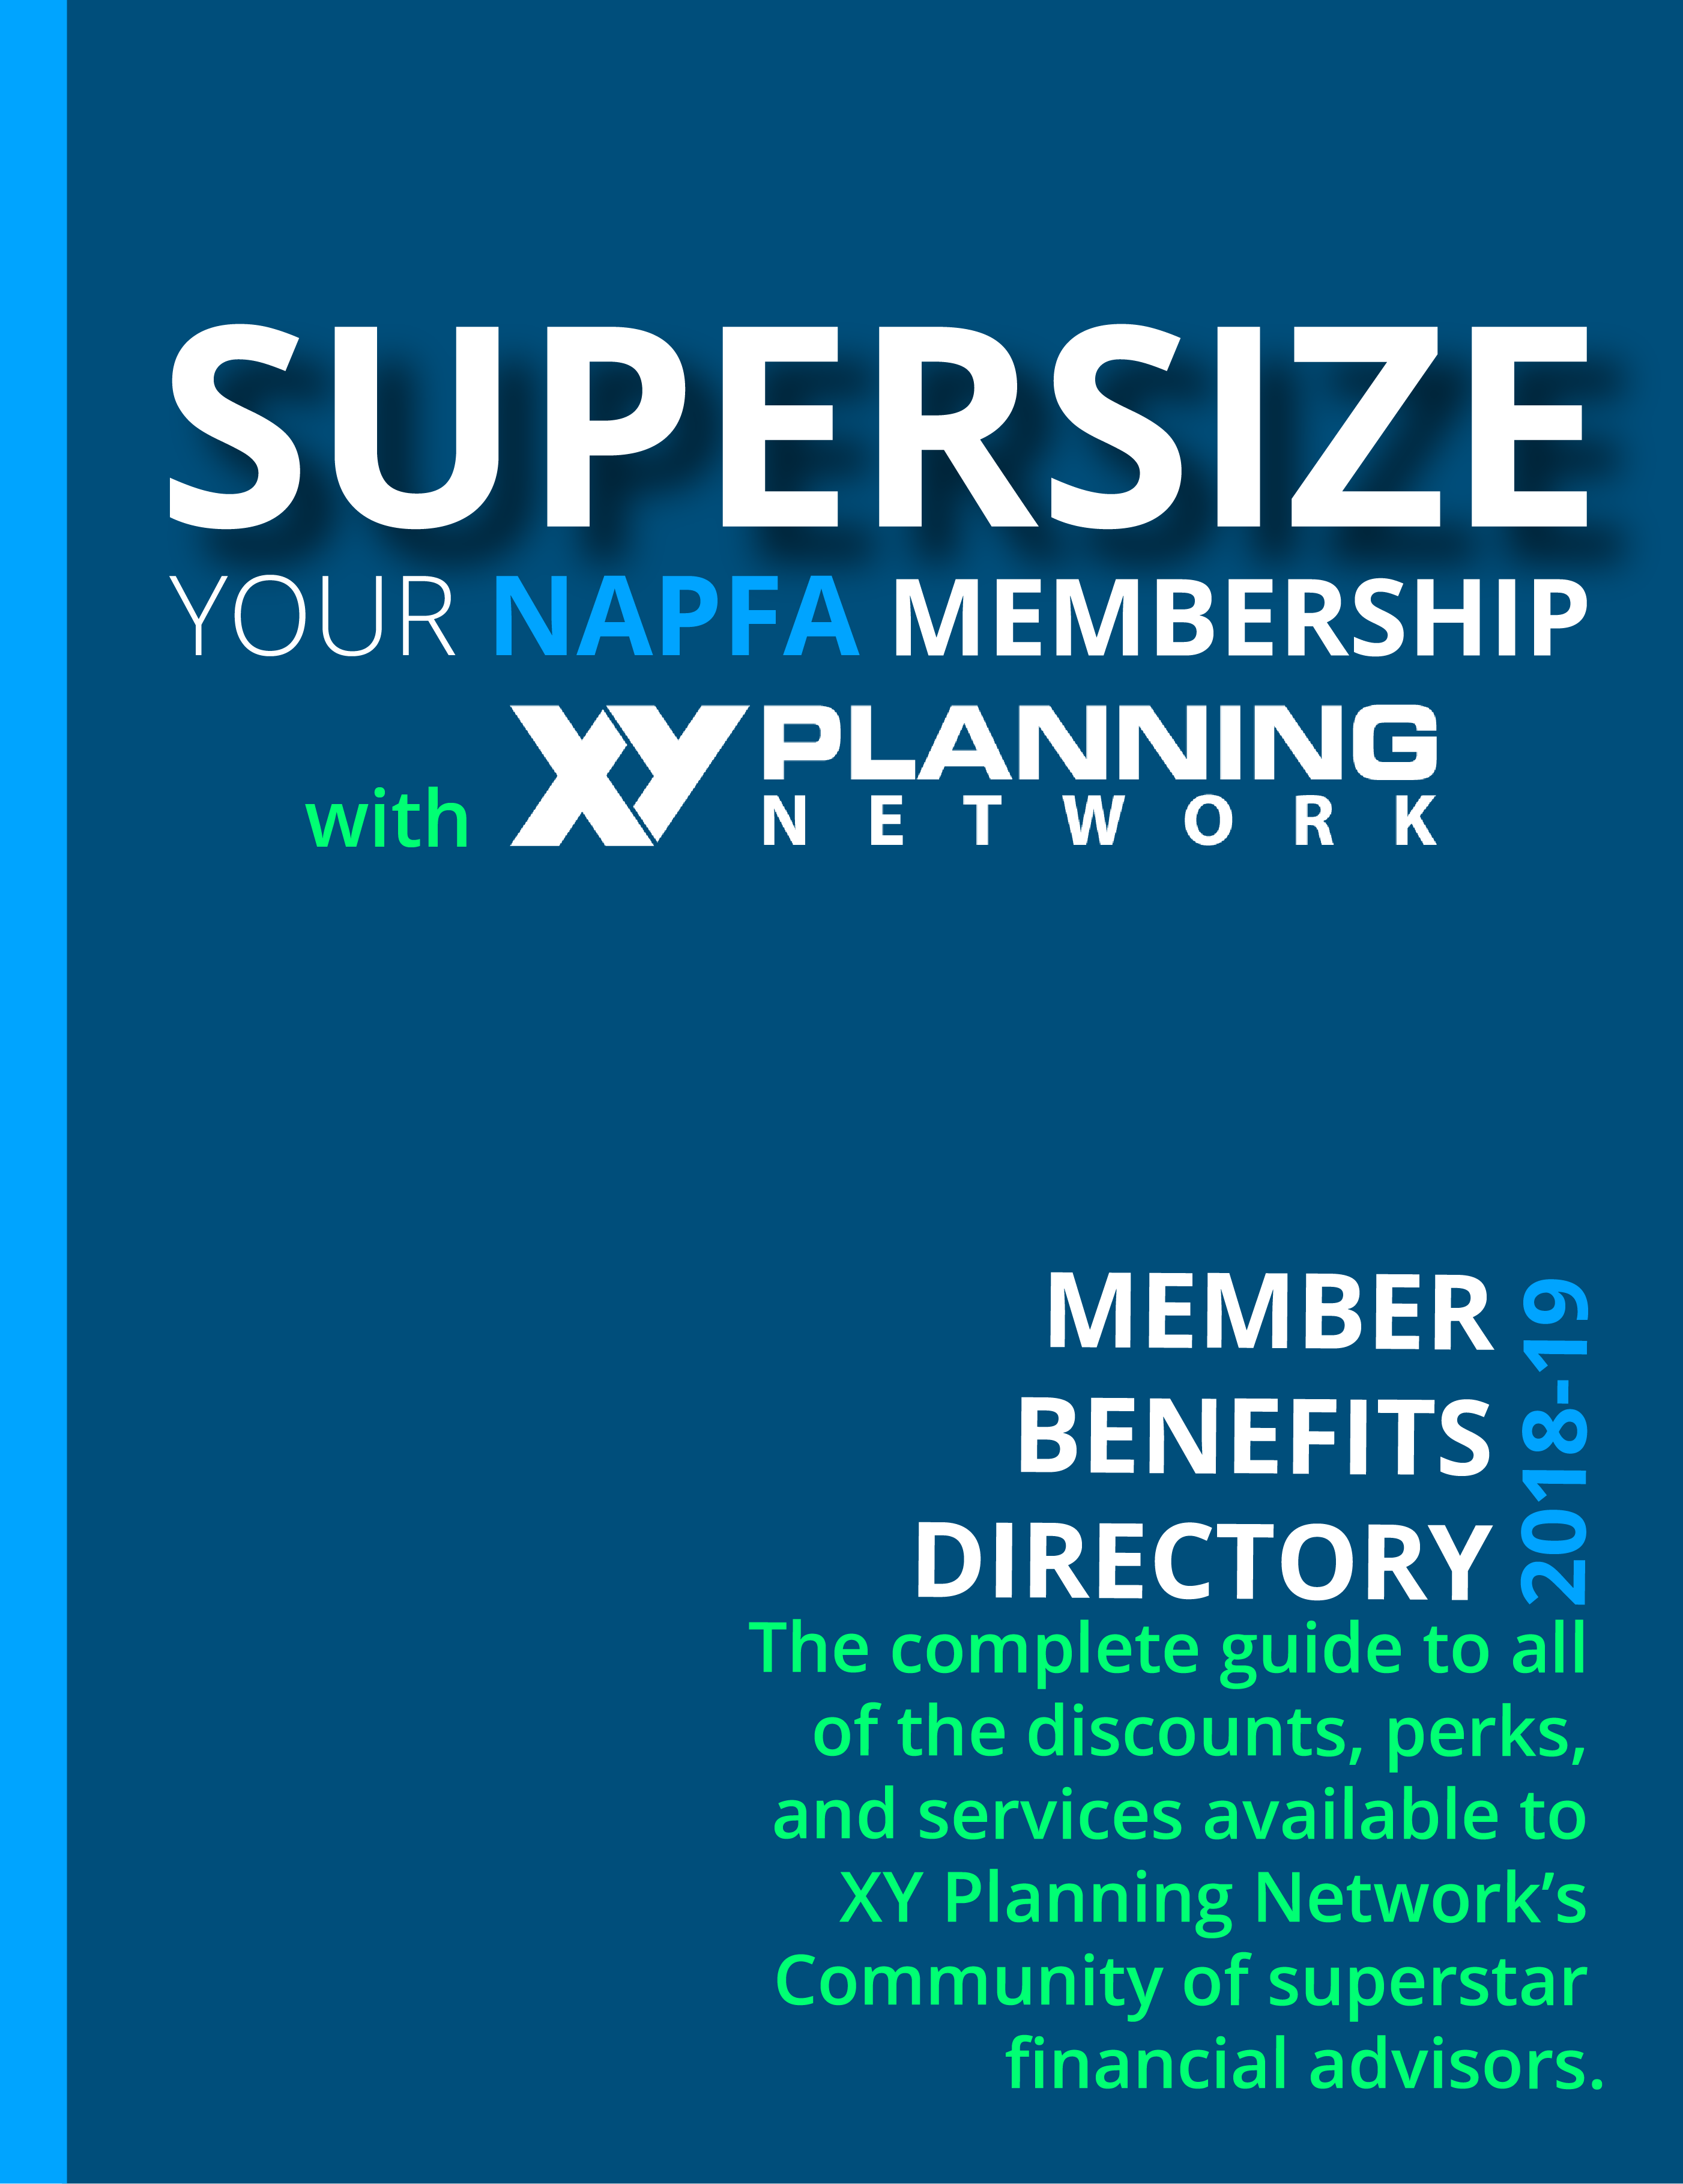 Supersize Your NAPFA Membership Cover.png